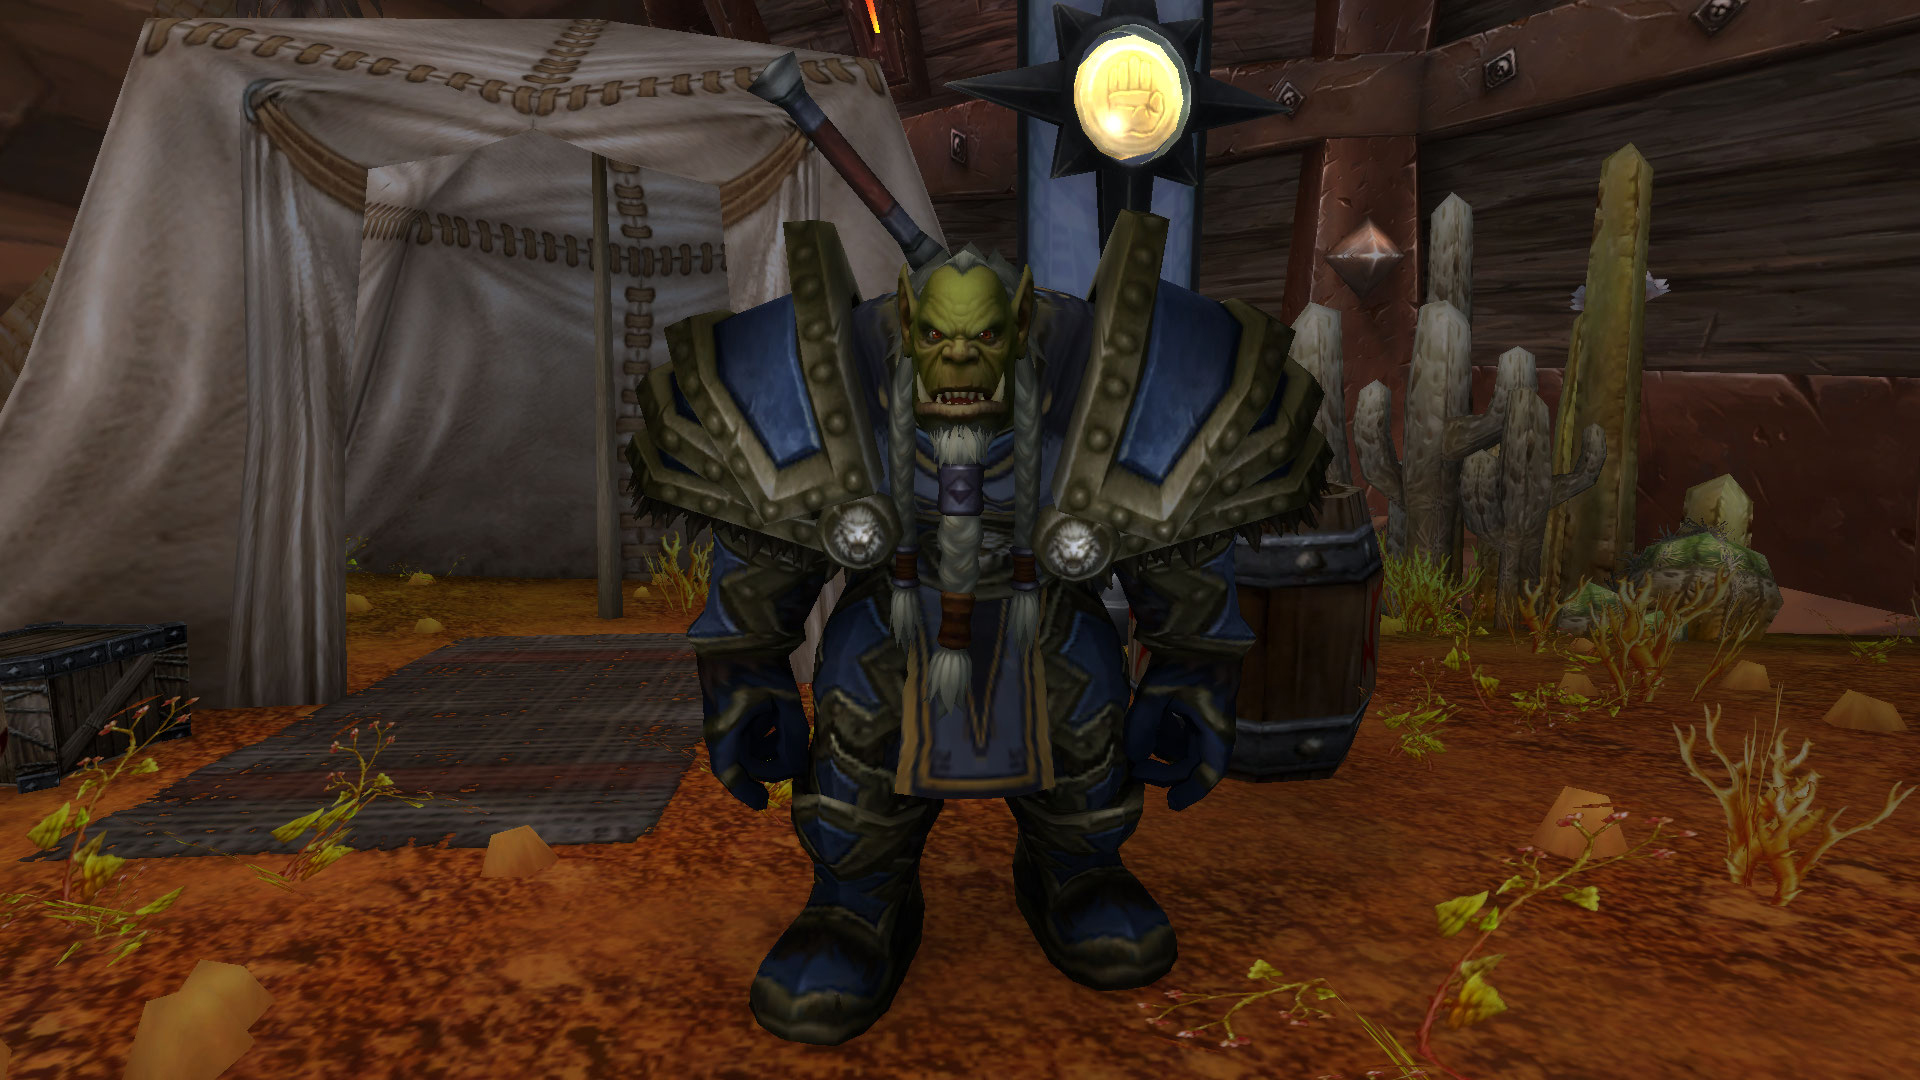 Patch 9.0 : Le commandant Throgg, de la Croisade d'argent, vous attend à Orgrimmar